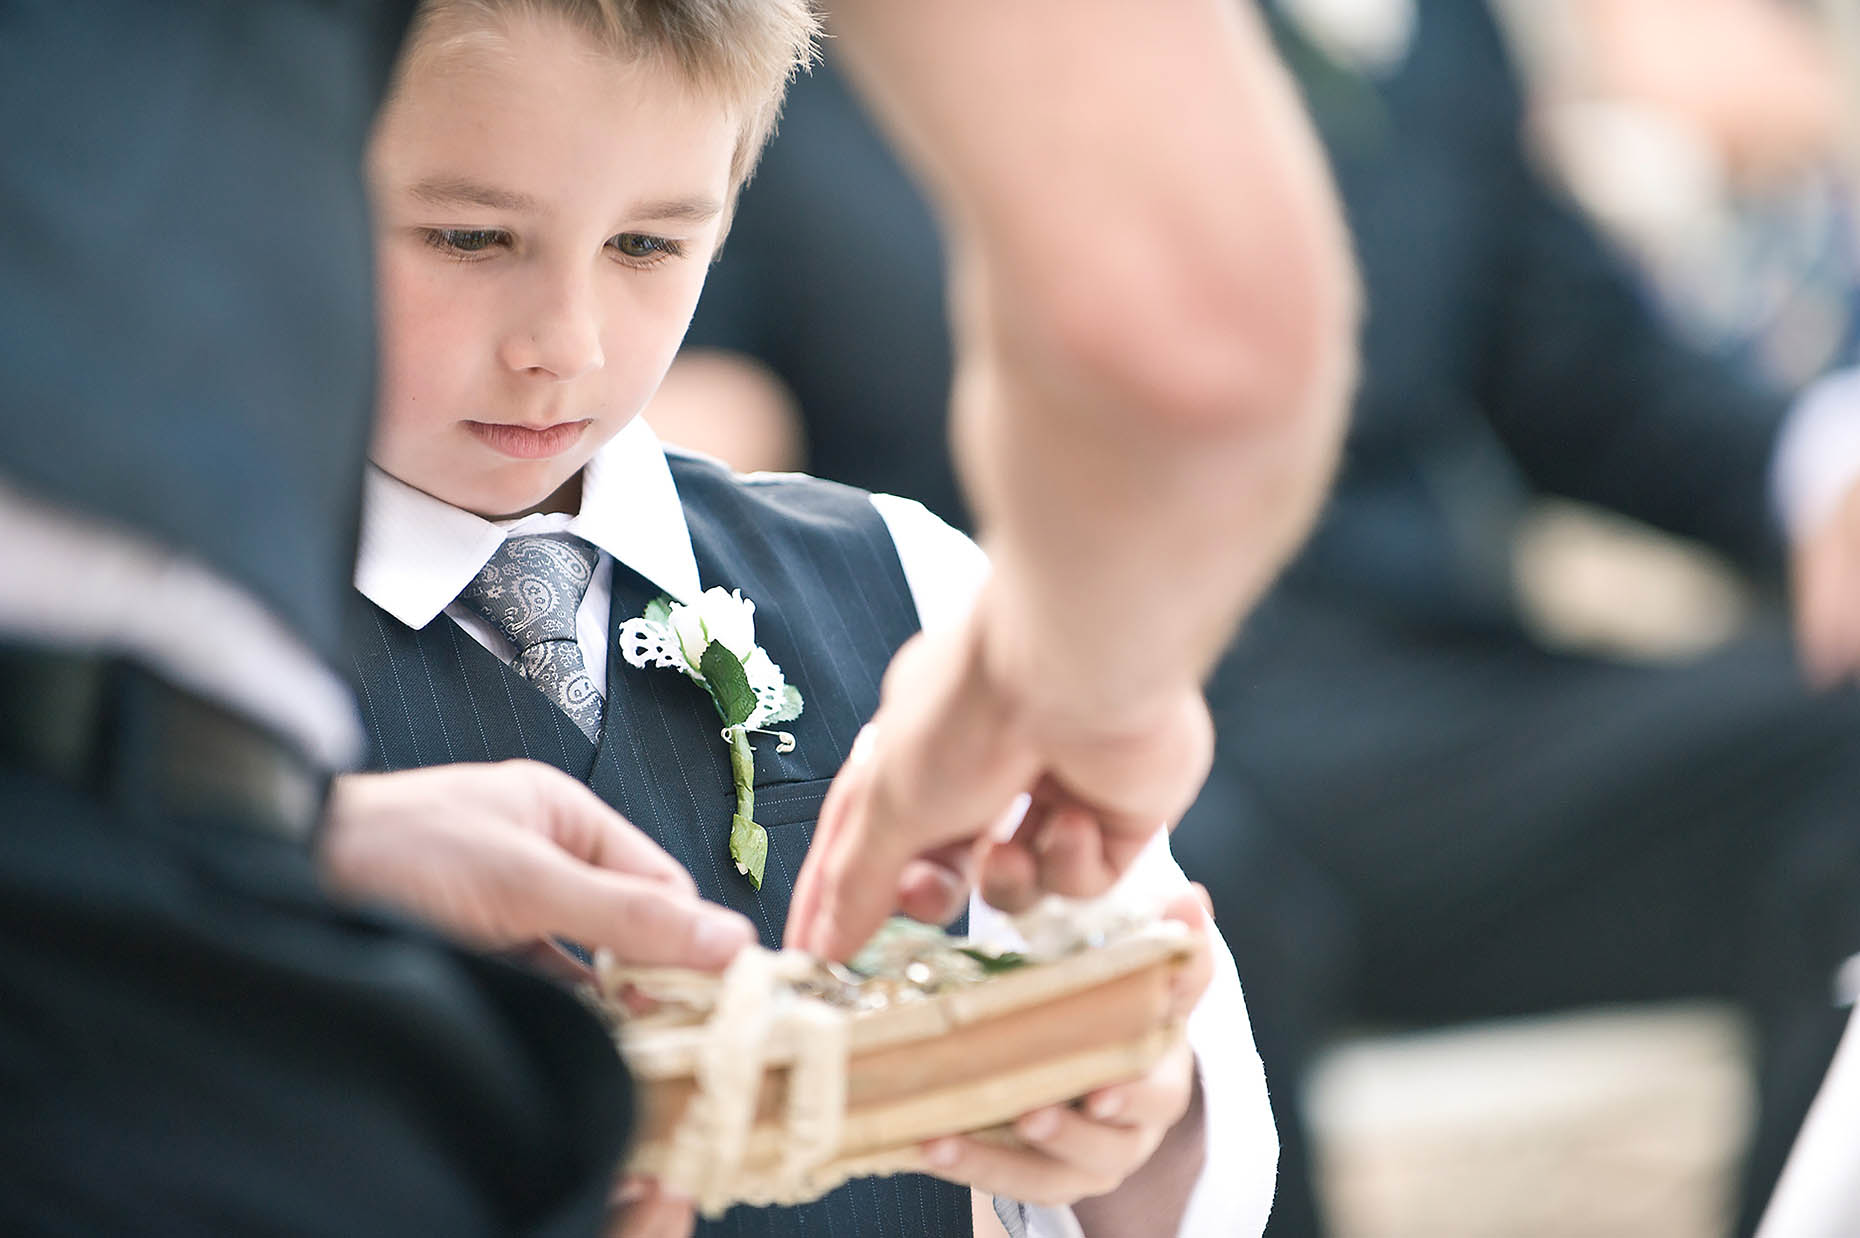 pageboy-rings-wedding-ceremony-branson-missouri-reportage-photographer-18